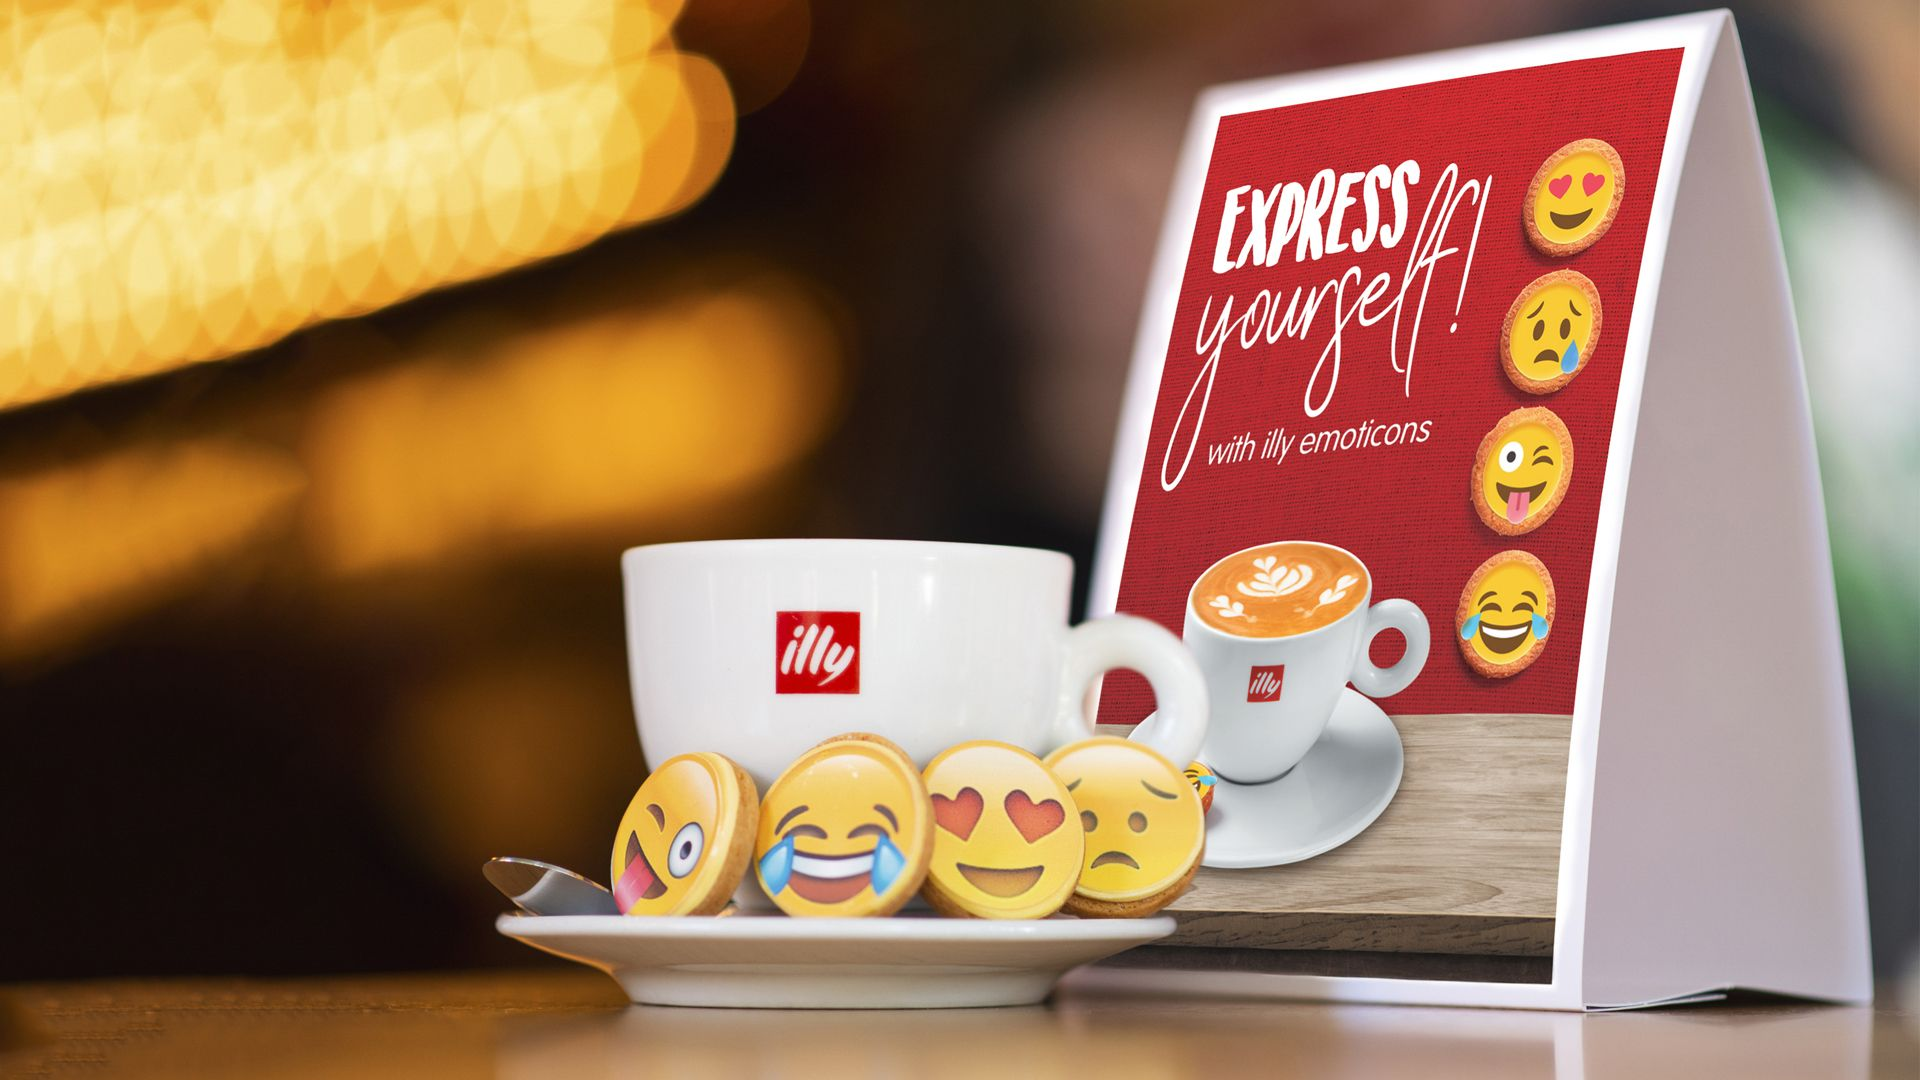 03-promo-event-illy-illymoticons.jpg